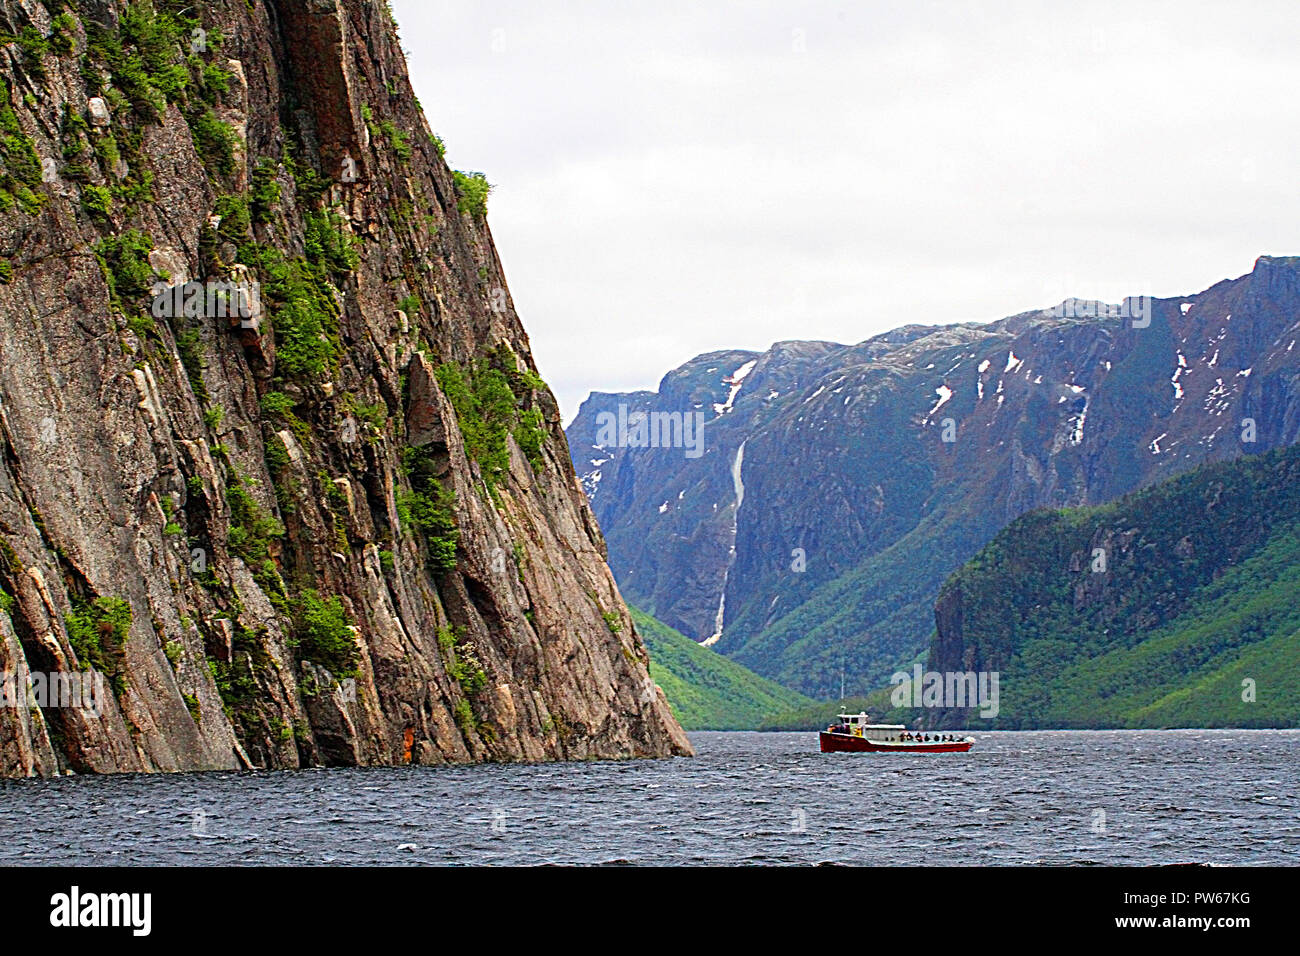 Western Brook Pond and Gros Morne National Park, Newfoundland, Canada,  tour boat  and Tabletop Mountains, inland fjiord - Stock Image